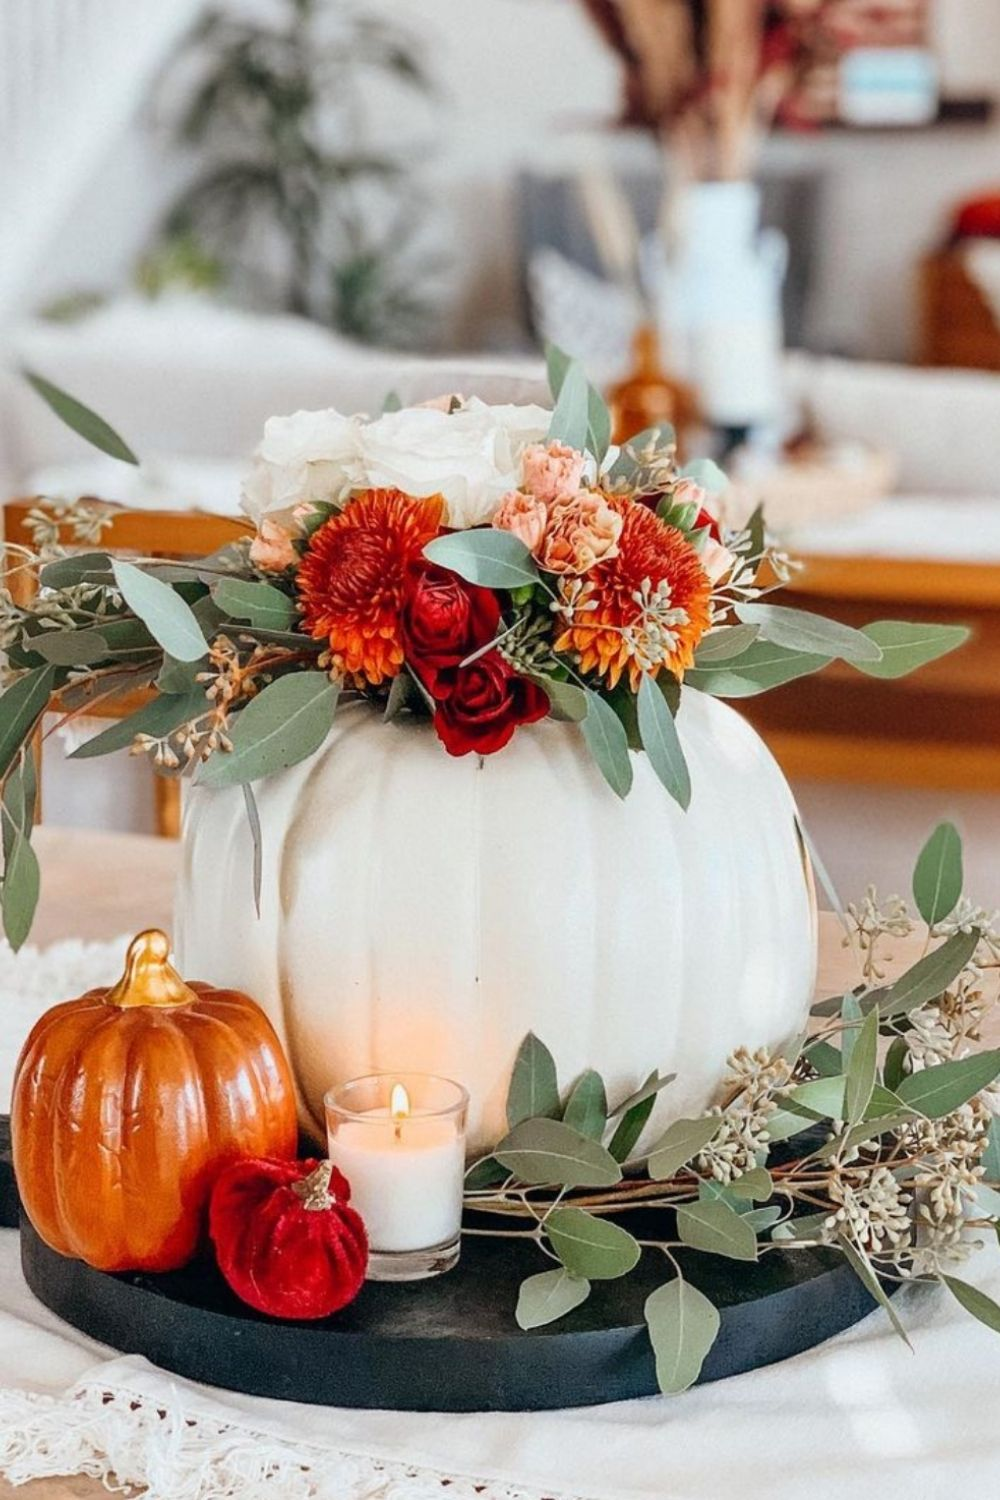 34 Creative Fall Table Centerpieces for Perfect Autumn Dinner Parties